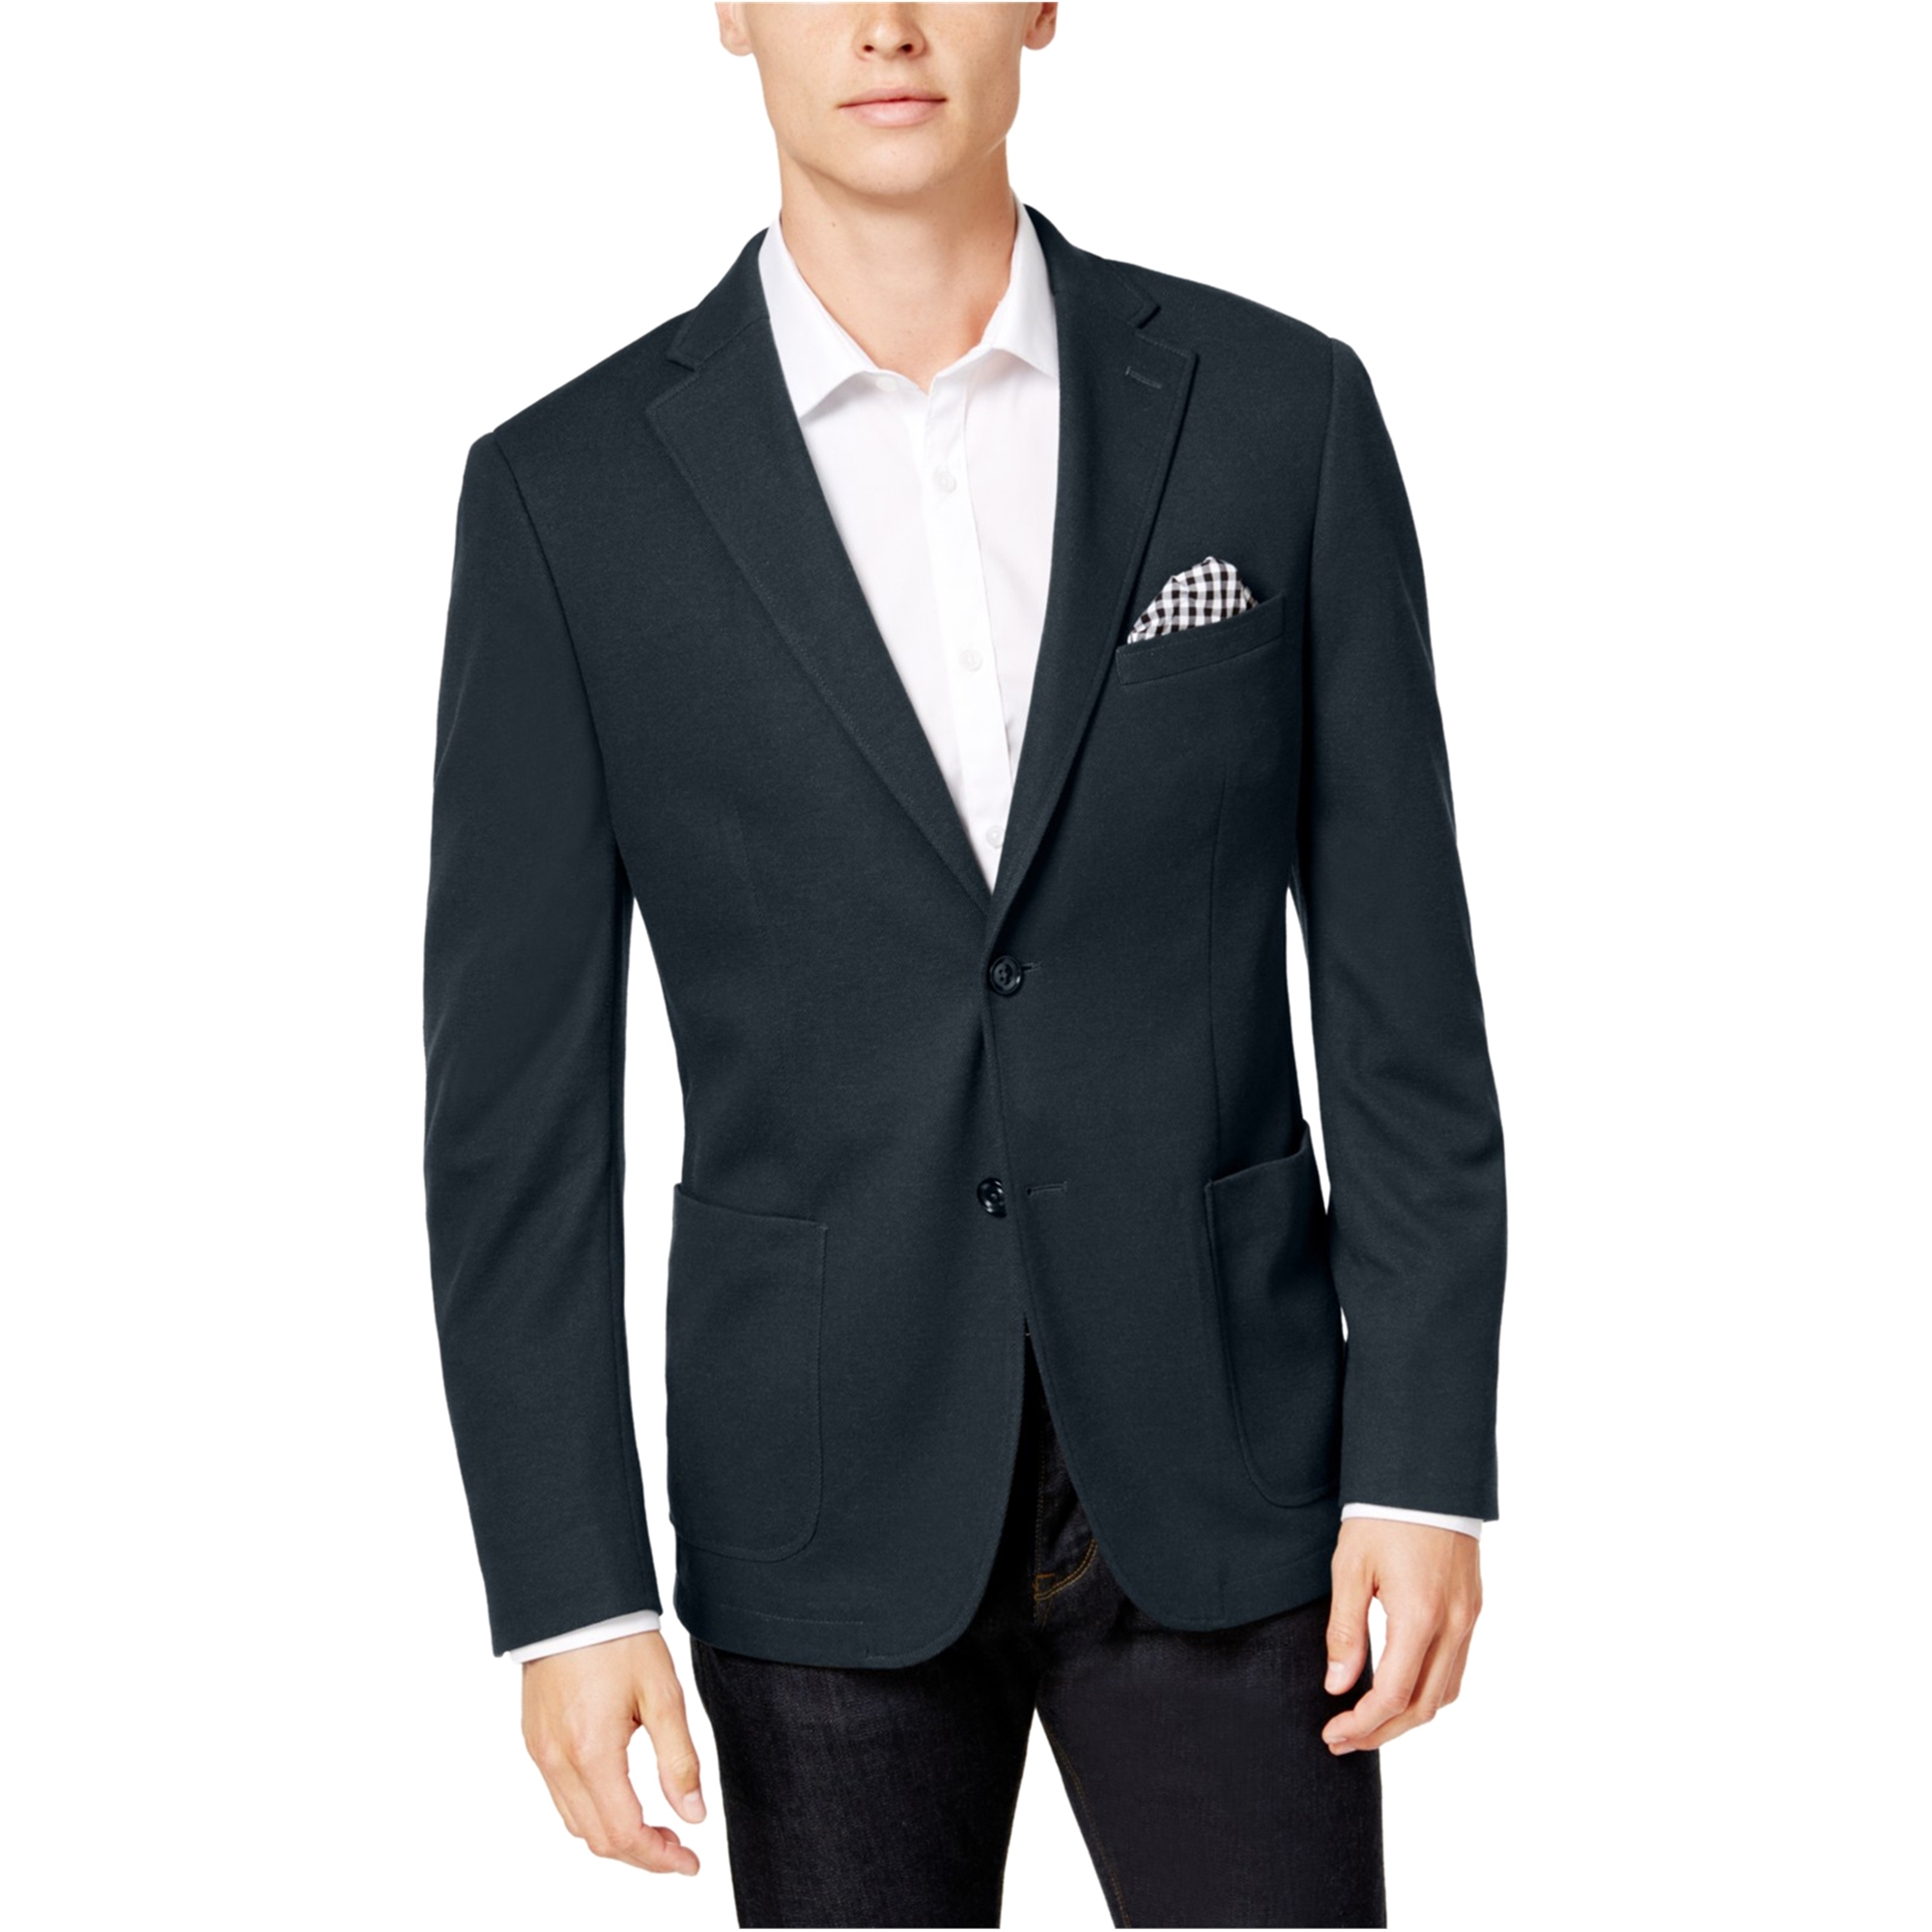 Alexander Julian Colours Mens Big /& Tall Single Breasted Modern Fit Check Sportcoat Blazers or Sports Jacket